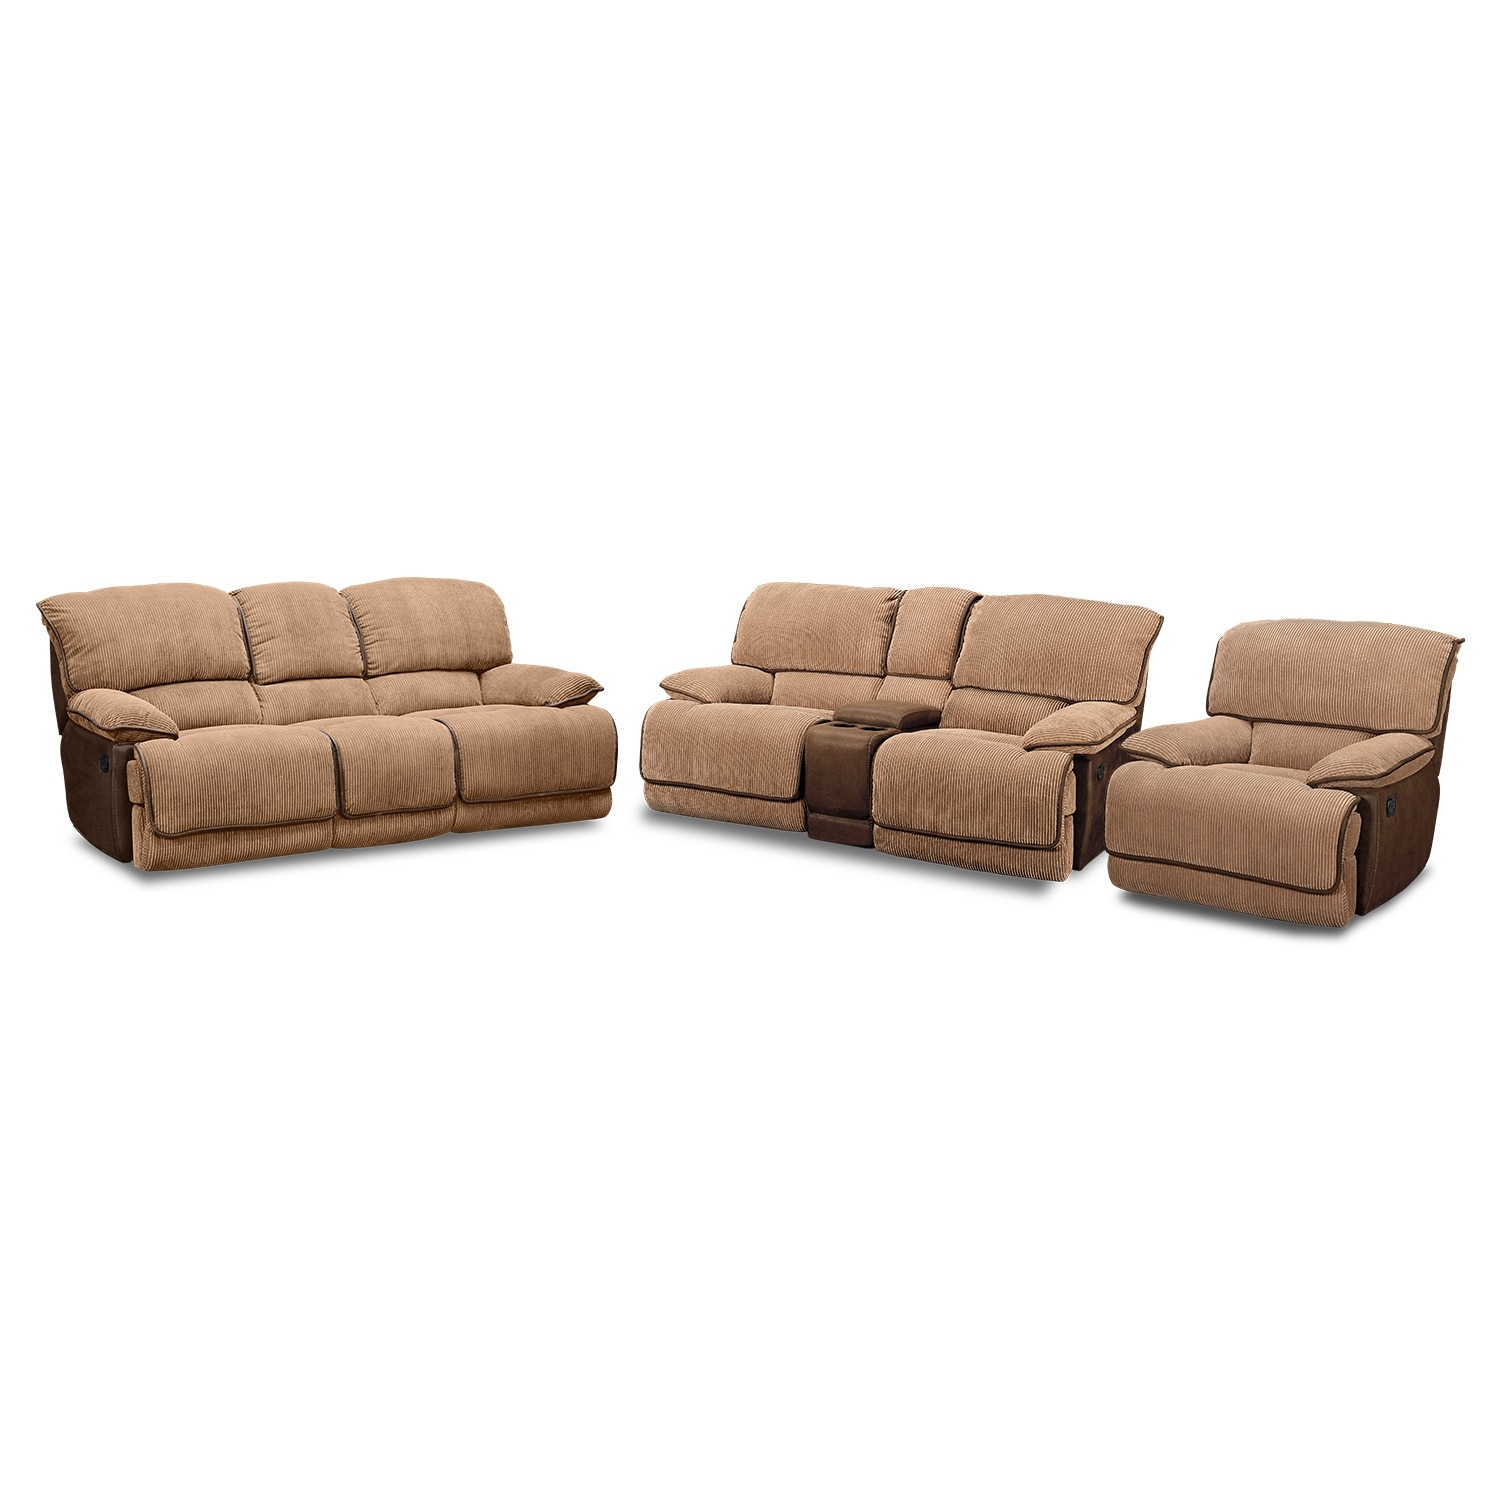 Hover to zoom  sc 1 st  Value City Furniture & Laguna Reclining Sofa Loveseat and Glider Recliner Set - Camel ... islam-shia.org